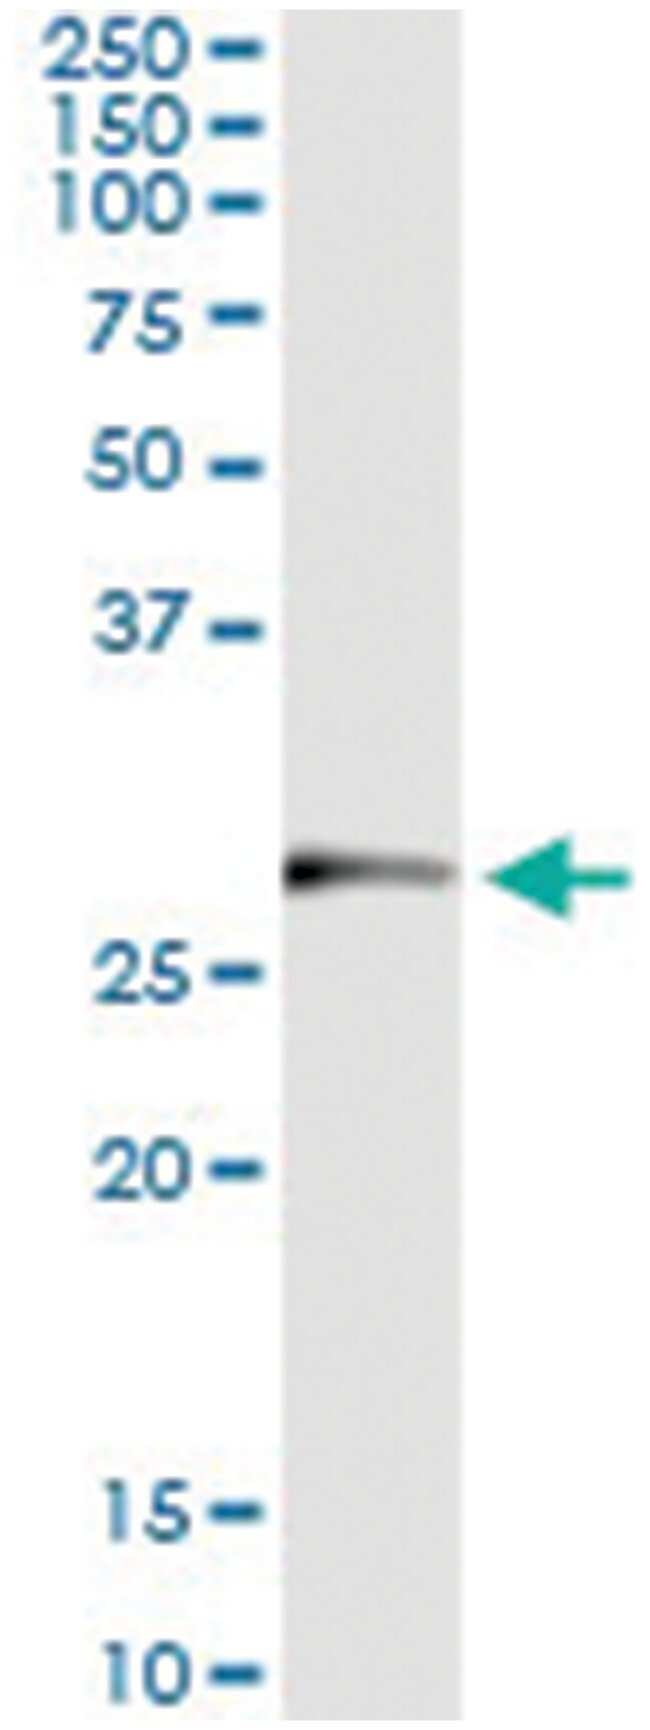 TRIM72, Human, IP-WB Antibody Pair (PW4), Abnova 1 Set:Life Sciences